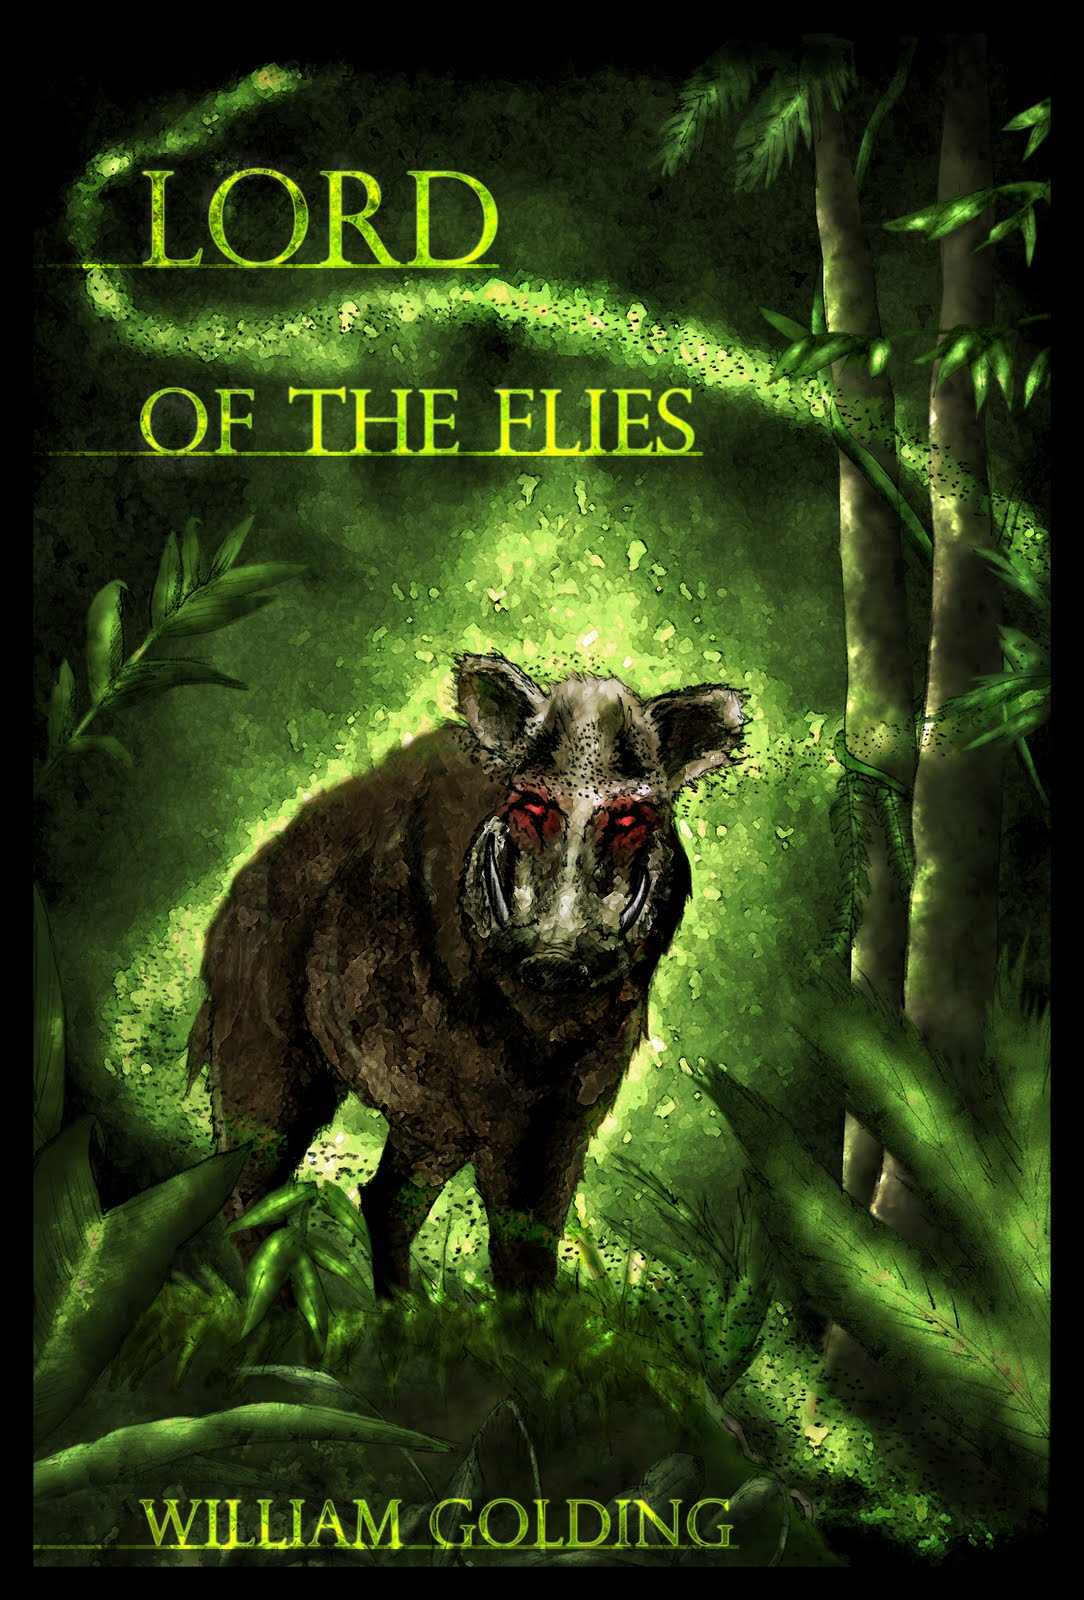 images in lord of the flies Lord of the flies by golding, william and a great selection of similar used, new and collectible books available now at abebookscom.